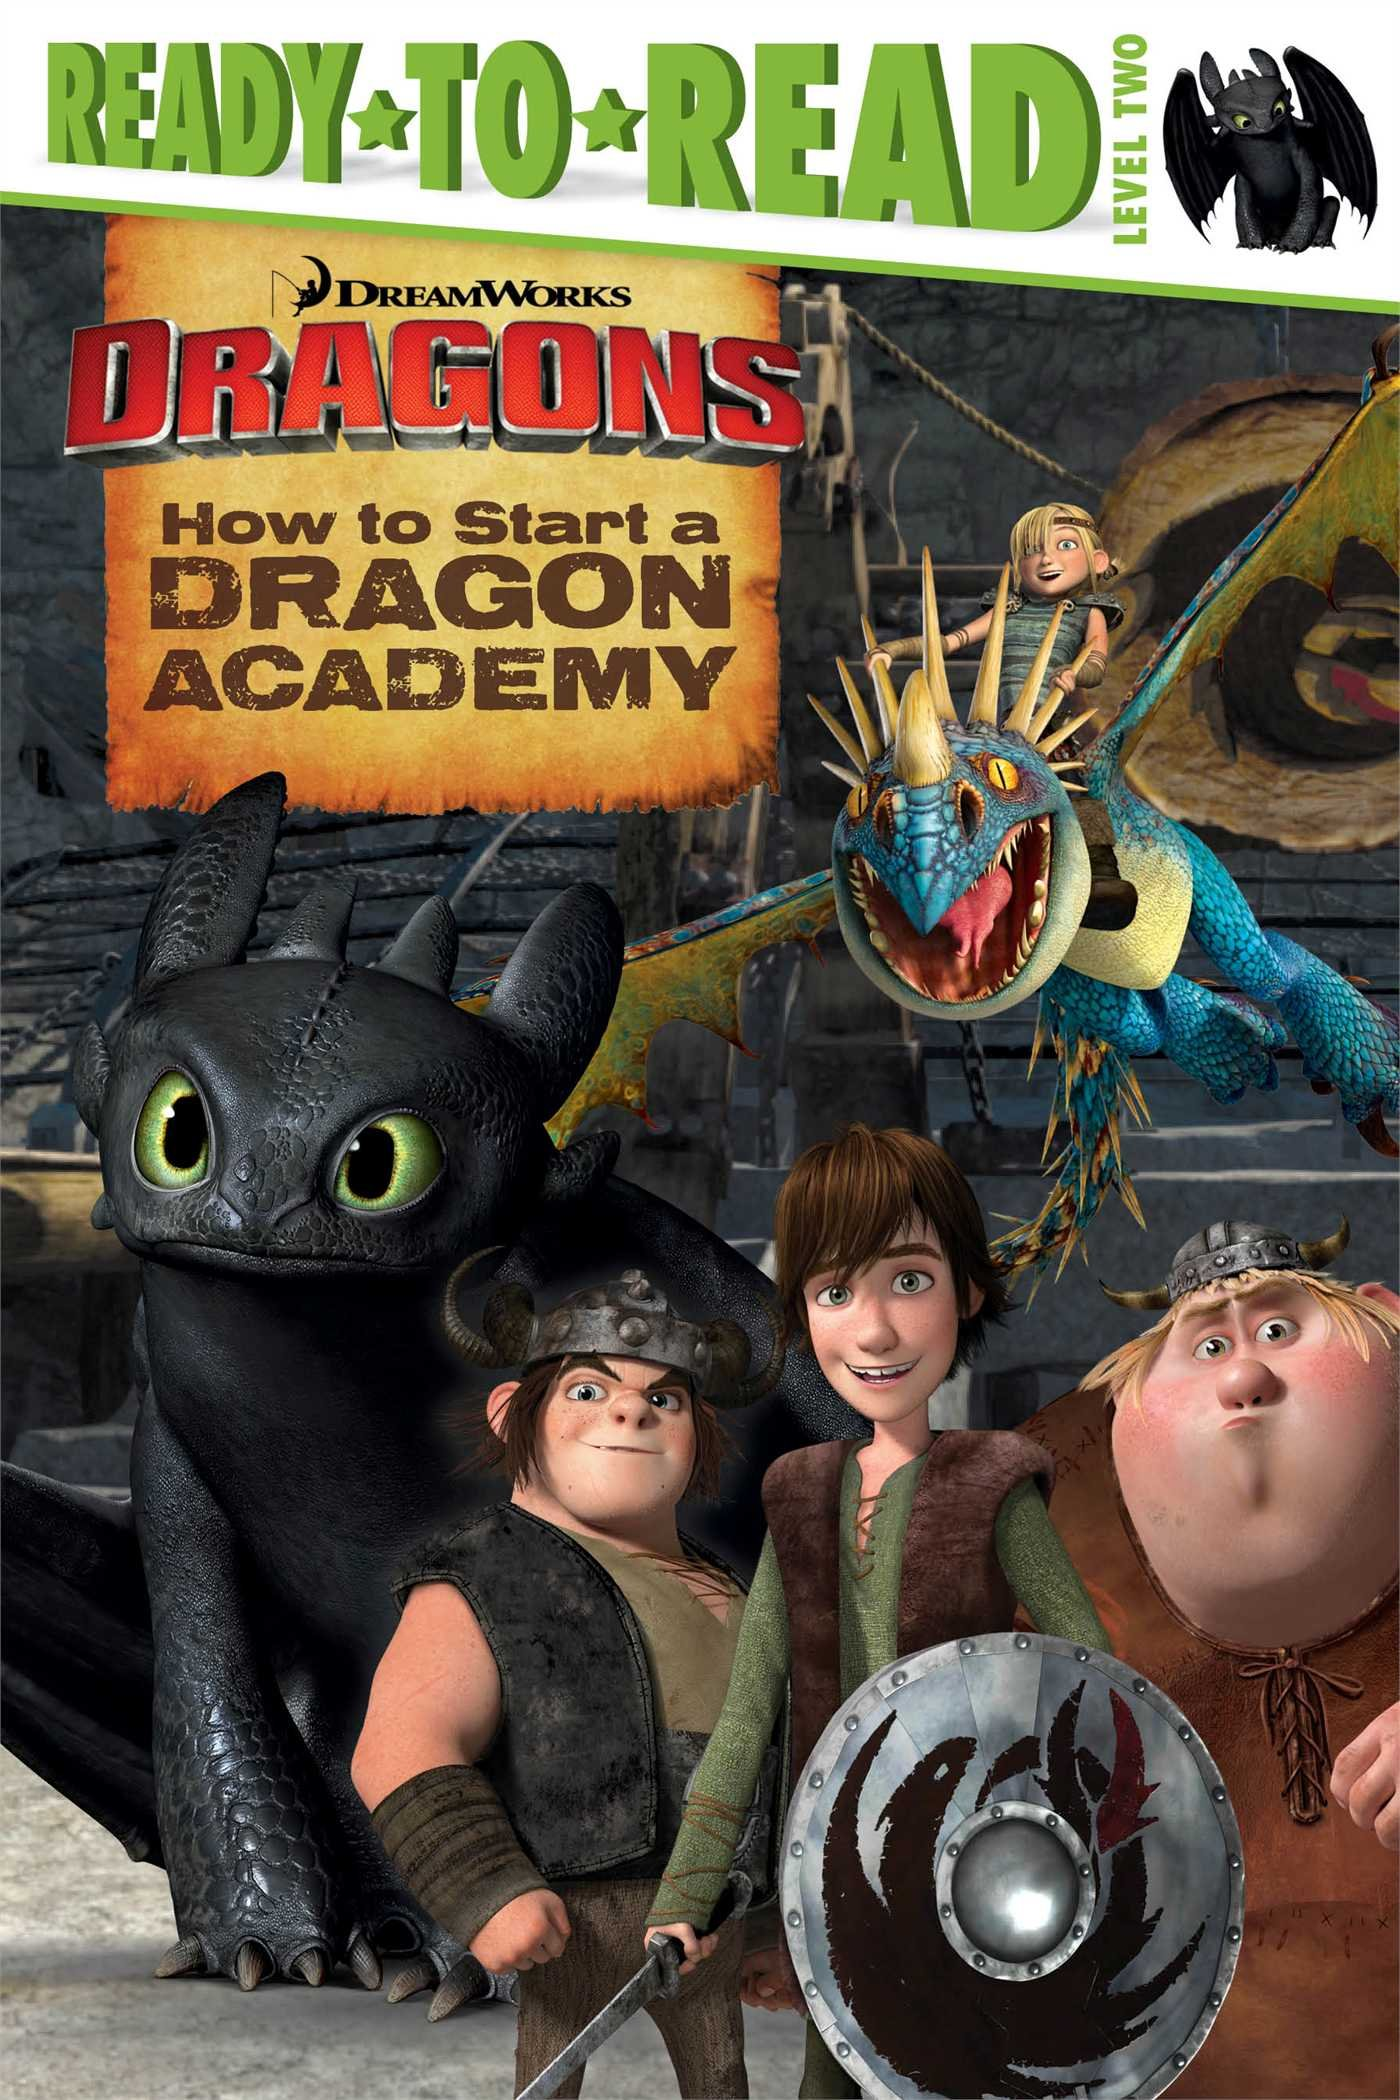 Amazon how to start a dragon academy how to train your dragon amazon how to start a dragon academy how to train your dragon tv 9781481419253 erica david style guide books ccuart Choice Image